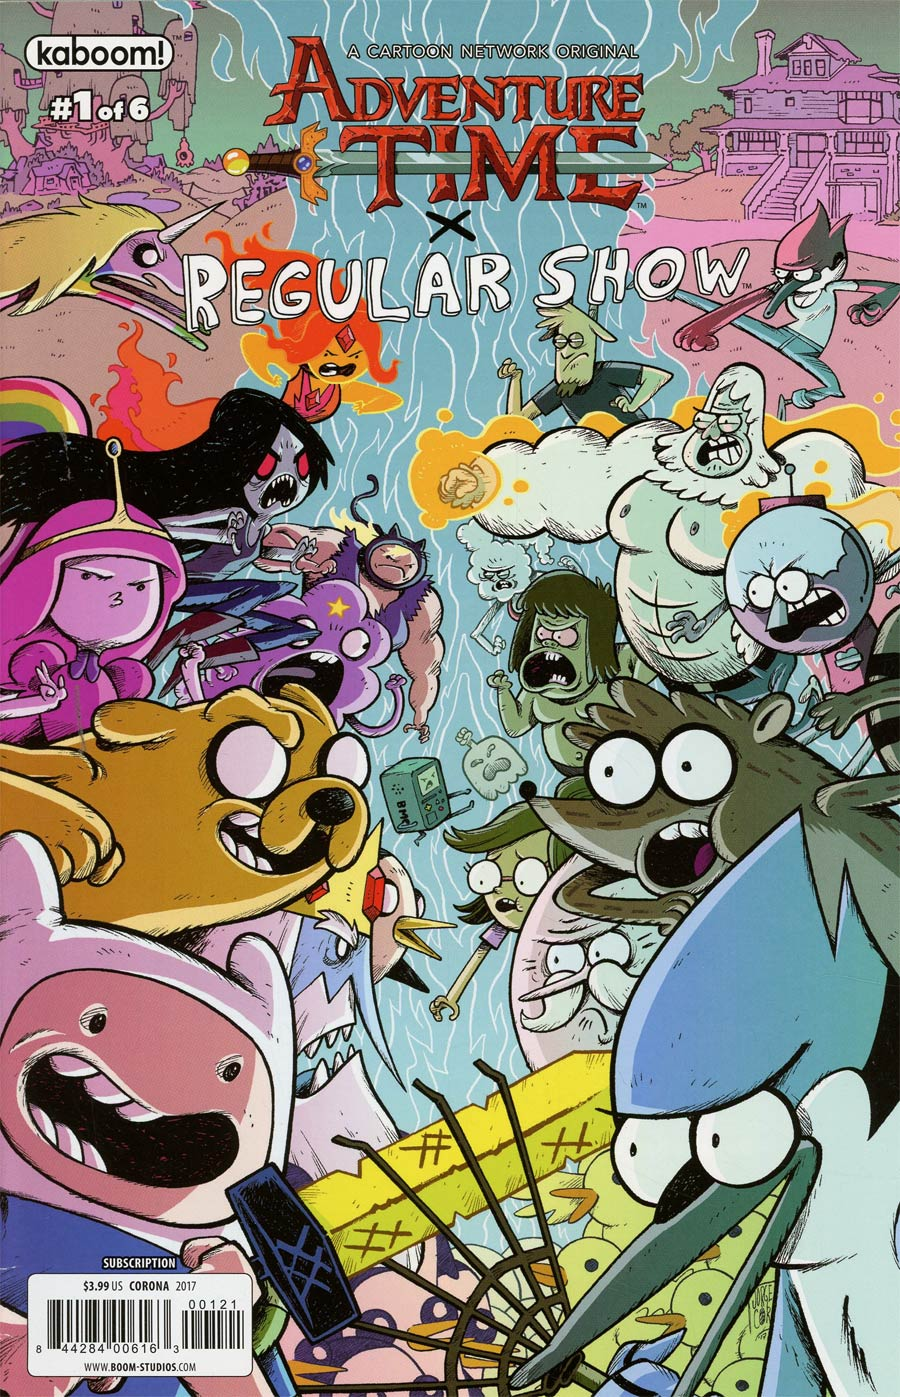 Adventure Time Regular Show #1 Cover C Variant Jorge Corona Subscription Cover